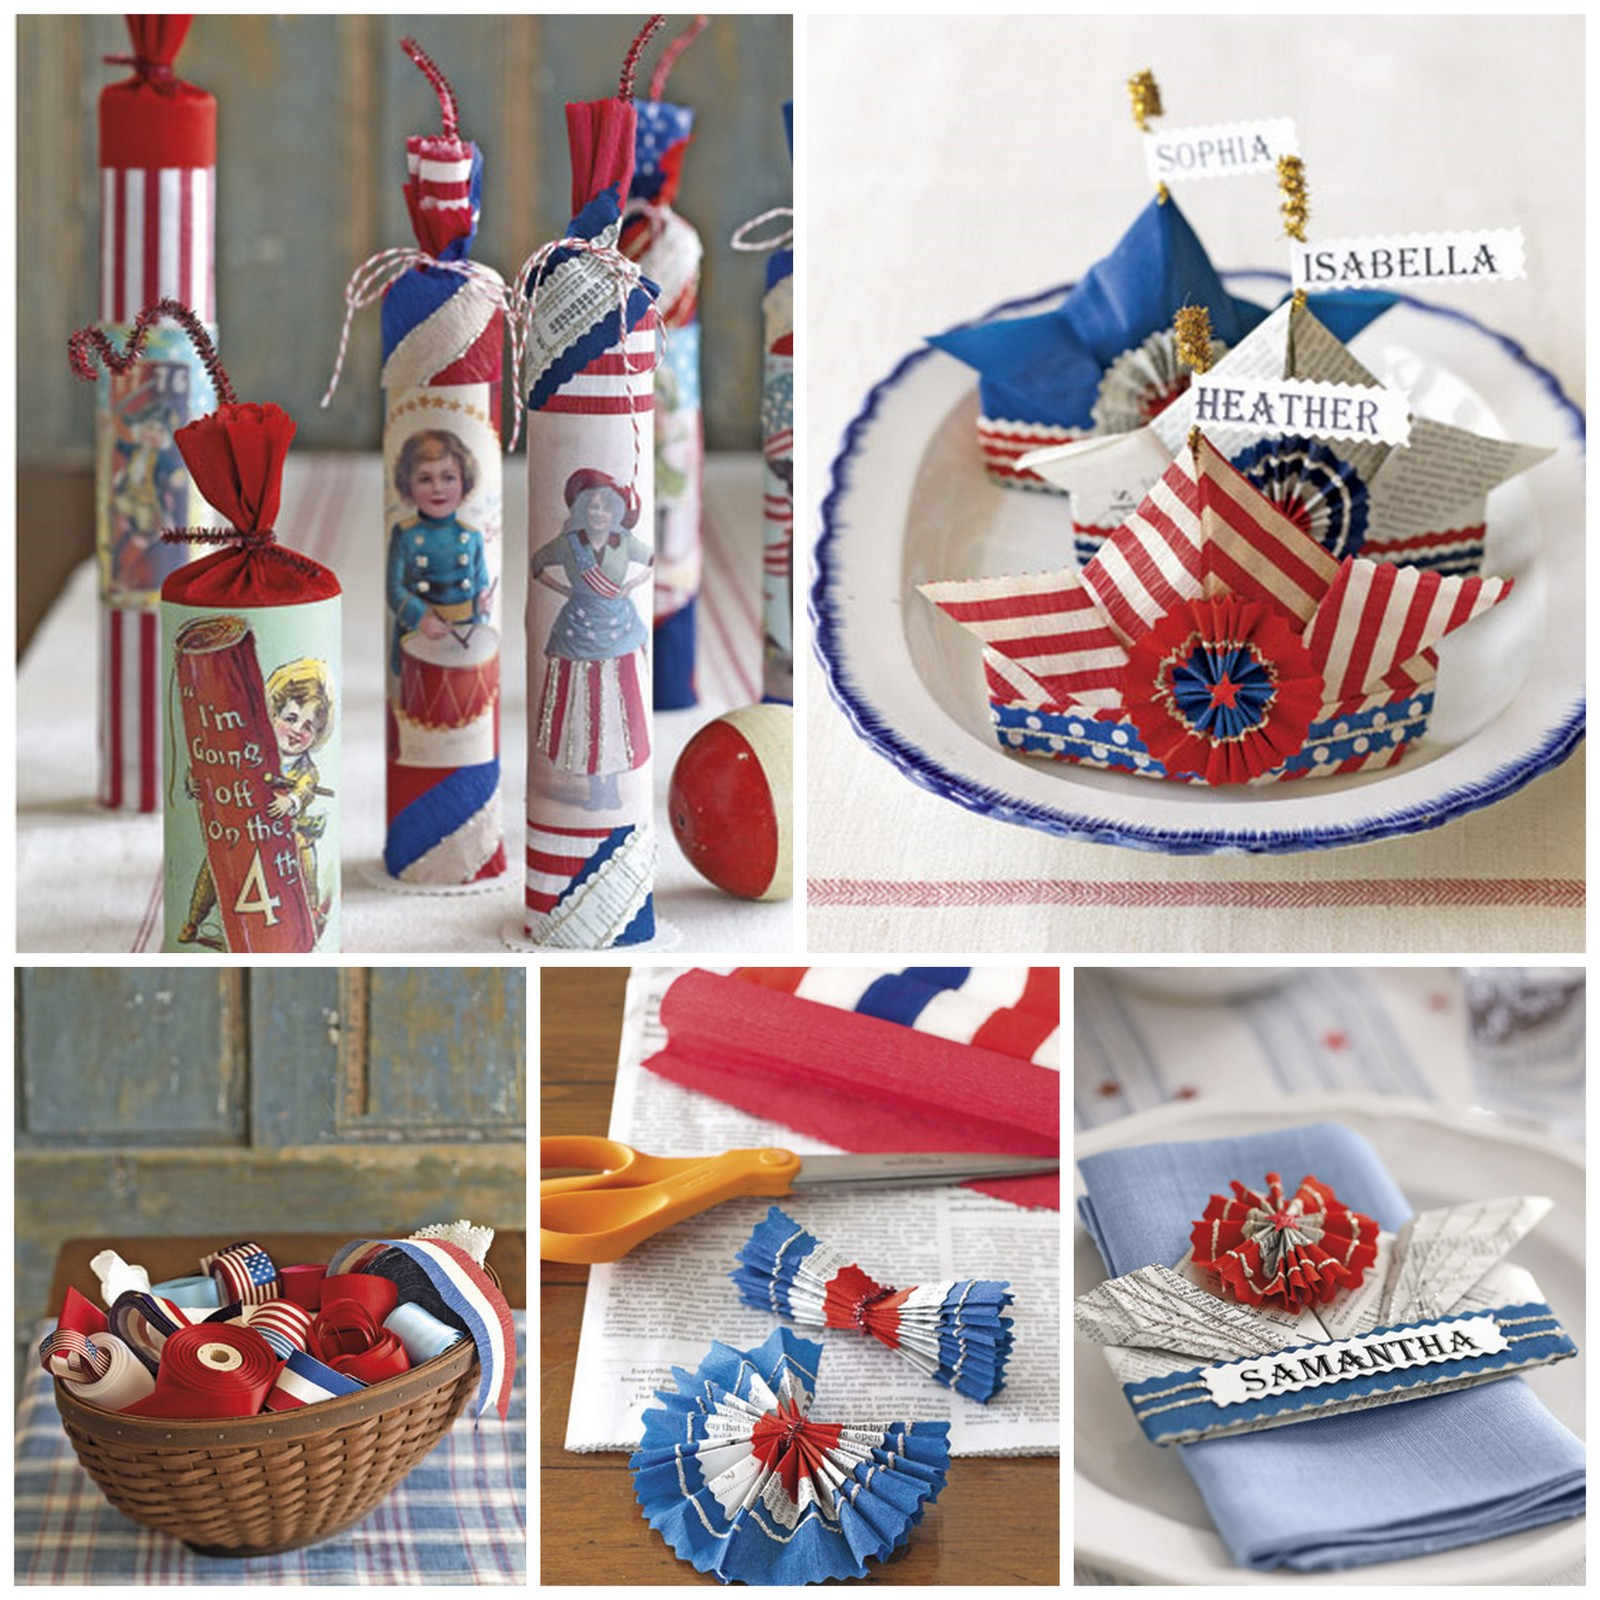 4th of july homemade decorations diy oh my creative for Homemade decorations